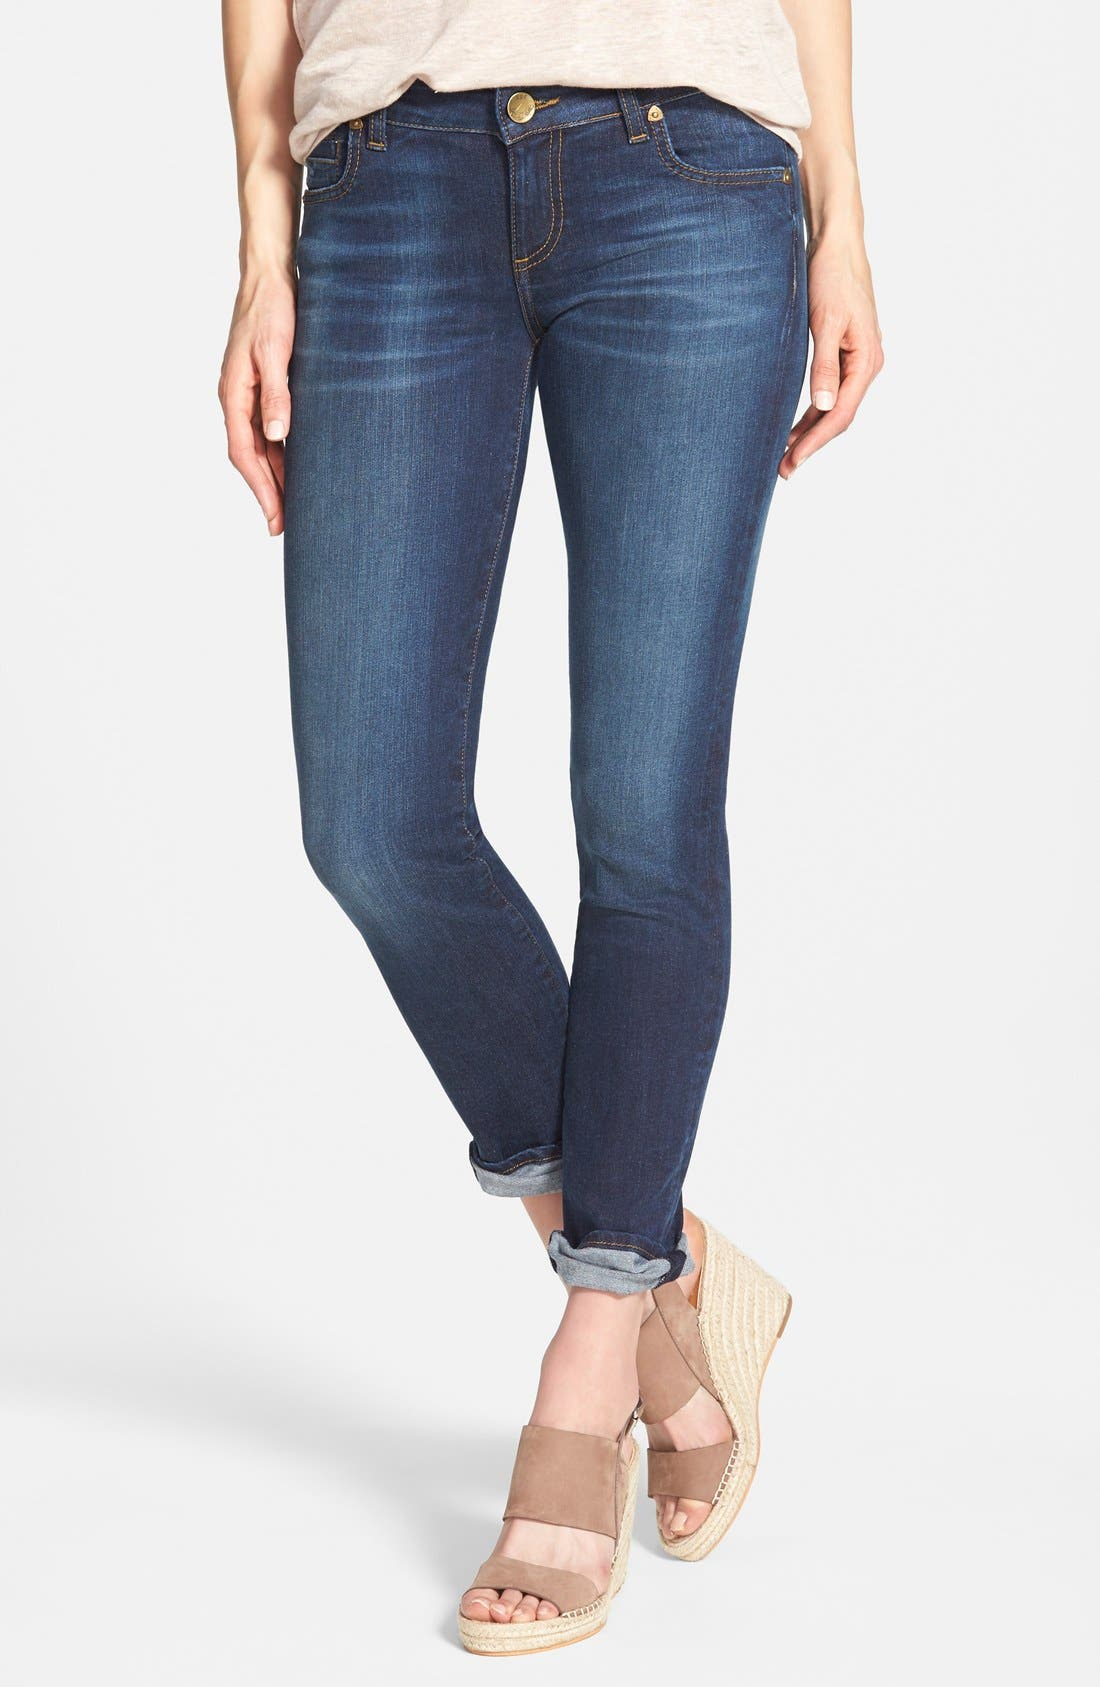 Main Image - KUT from the Kloth 'Catherine' Boyfriend Jeans (Easily) (Regular & Petite)